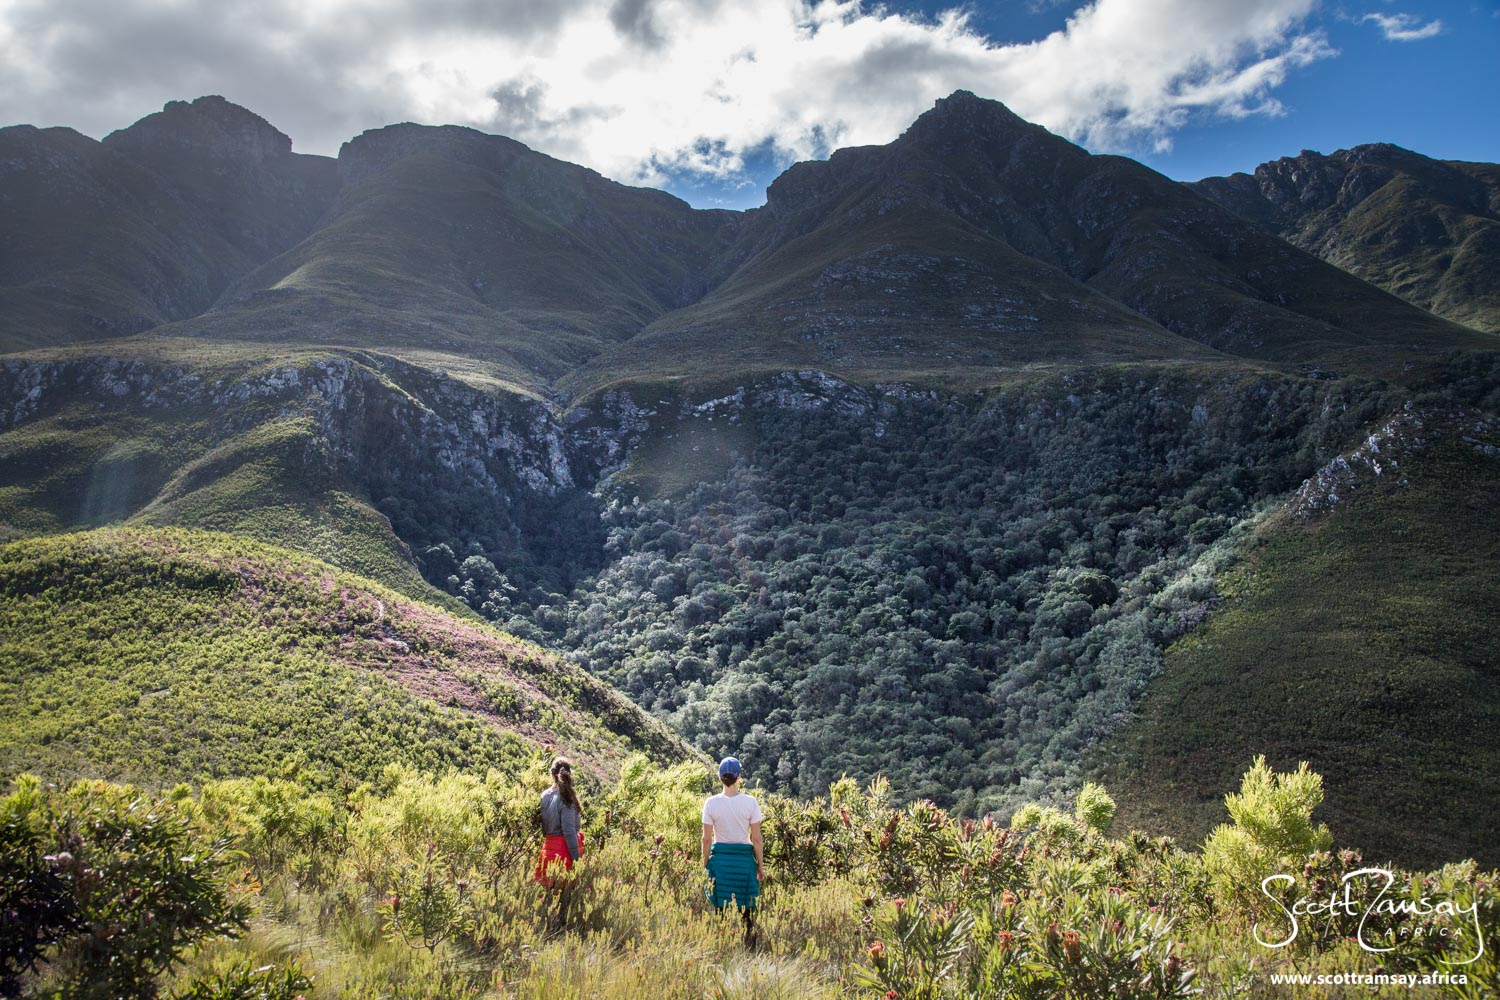 My friends Julia and Hailey checking out the mountain peaks of the Swellendam Mountains, in Marloth Nature Reserve